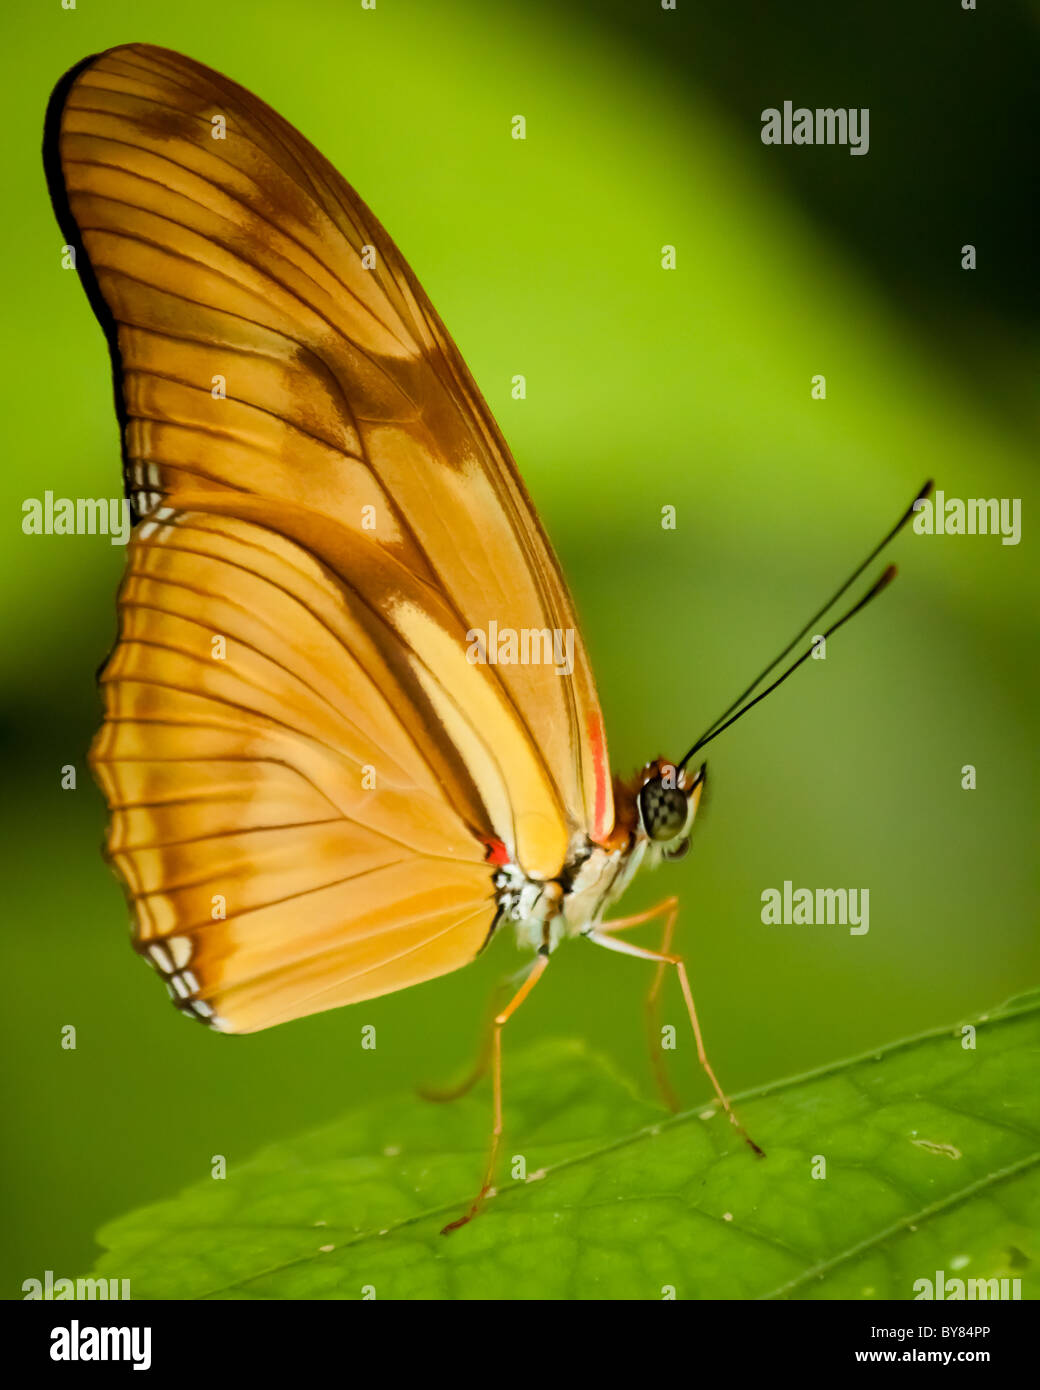 Butterfly Macro - Stock Image